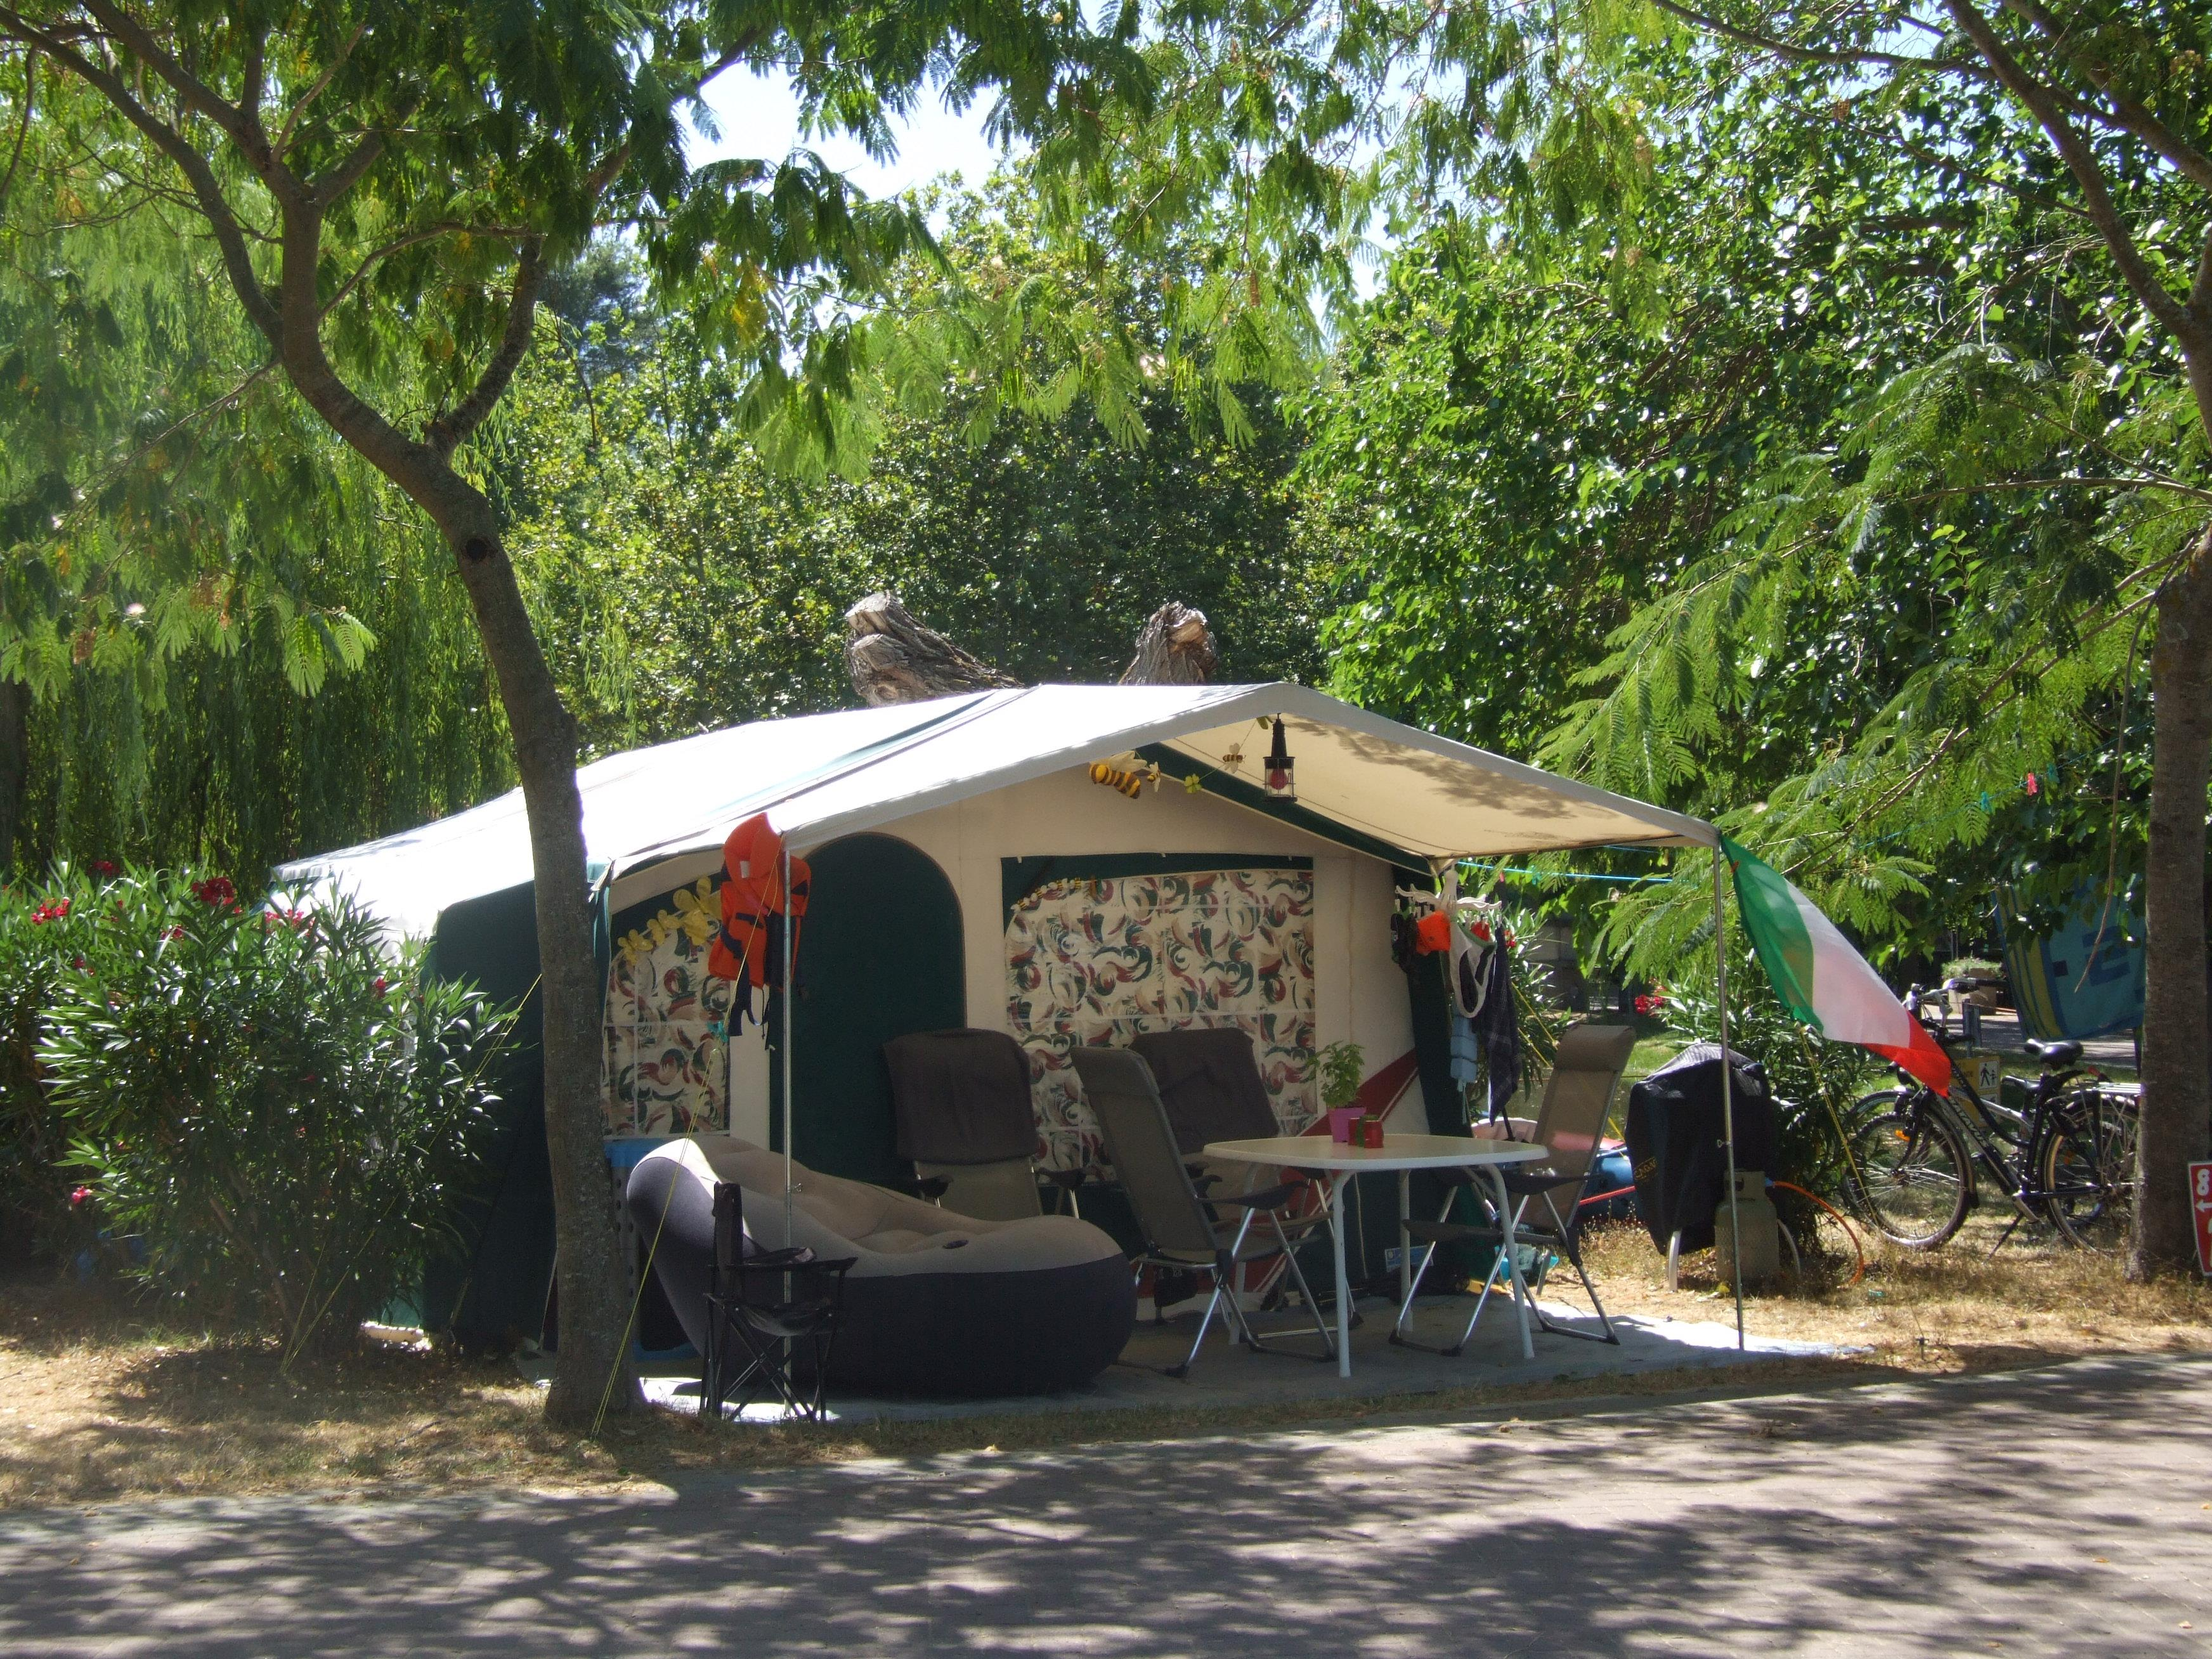 FORFAIT Piazzola STANDARD (2 persone incluse)